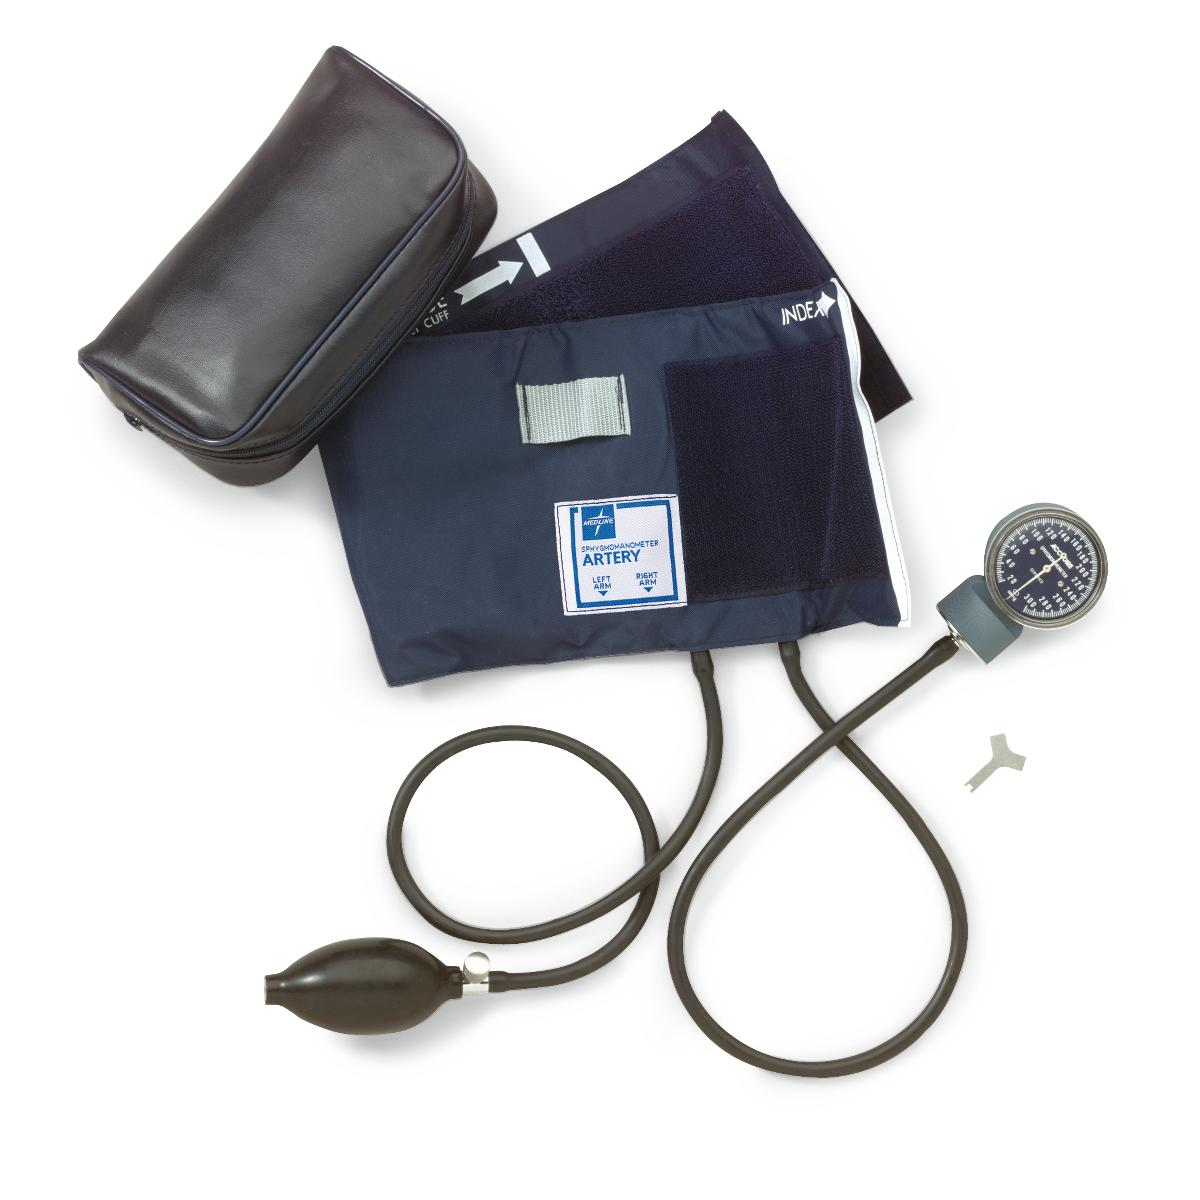 BLOOD PRESSURE UNIT ANEROID DIAL HAND HELD WITH LARGE ADULT CUFF